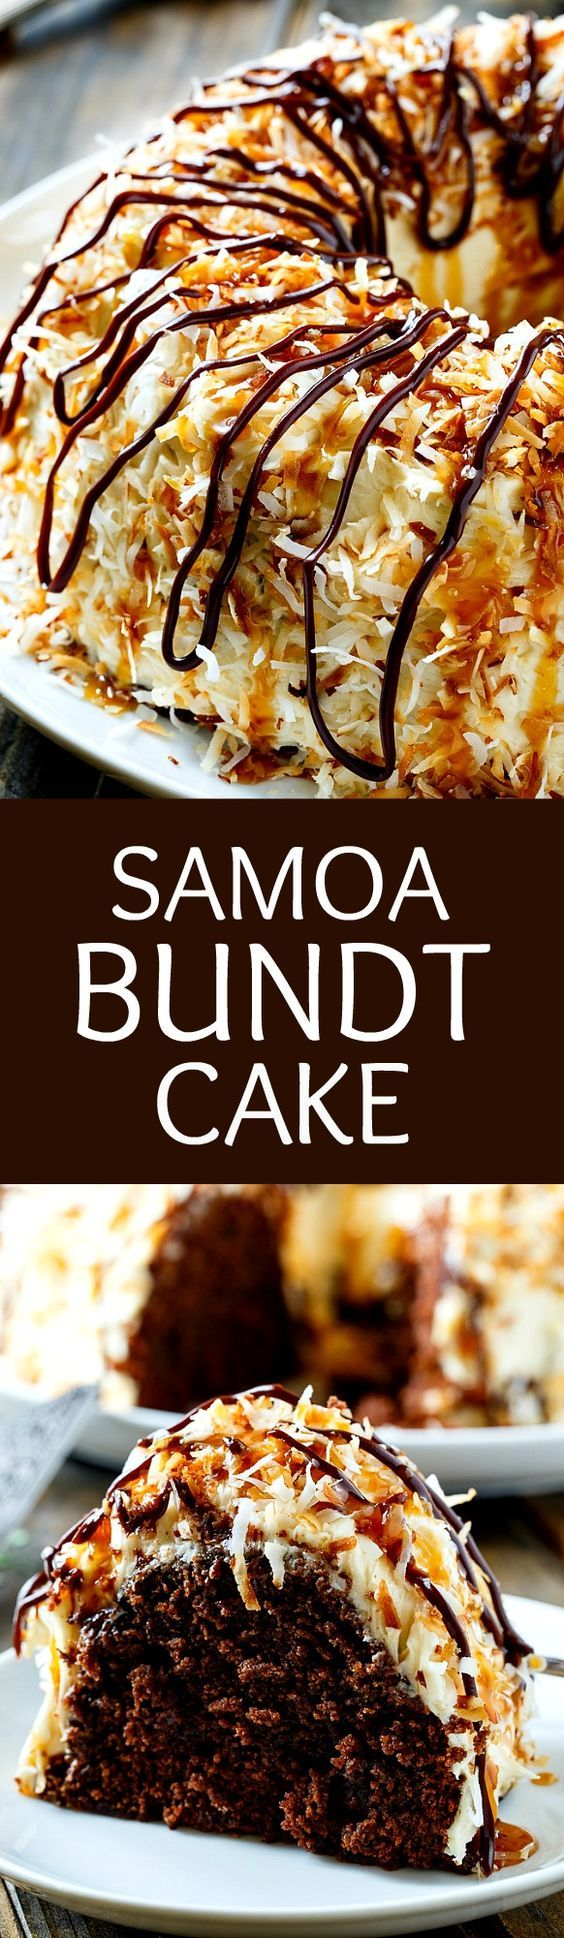 Samoa Bundt Cake- a moist chocolate cake covered in caramel icing and toasted coconut.